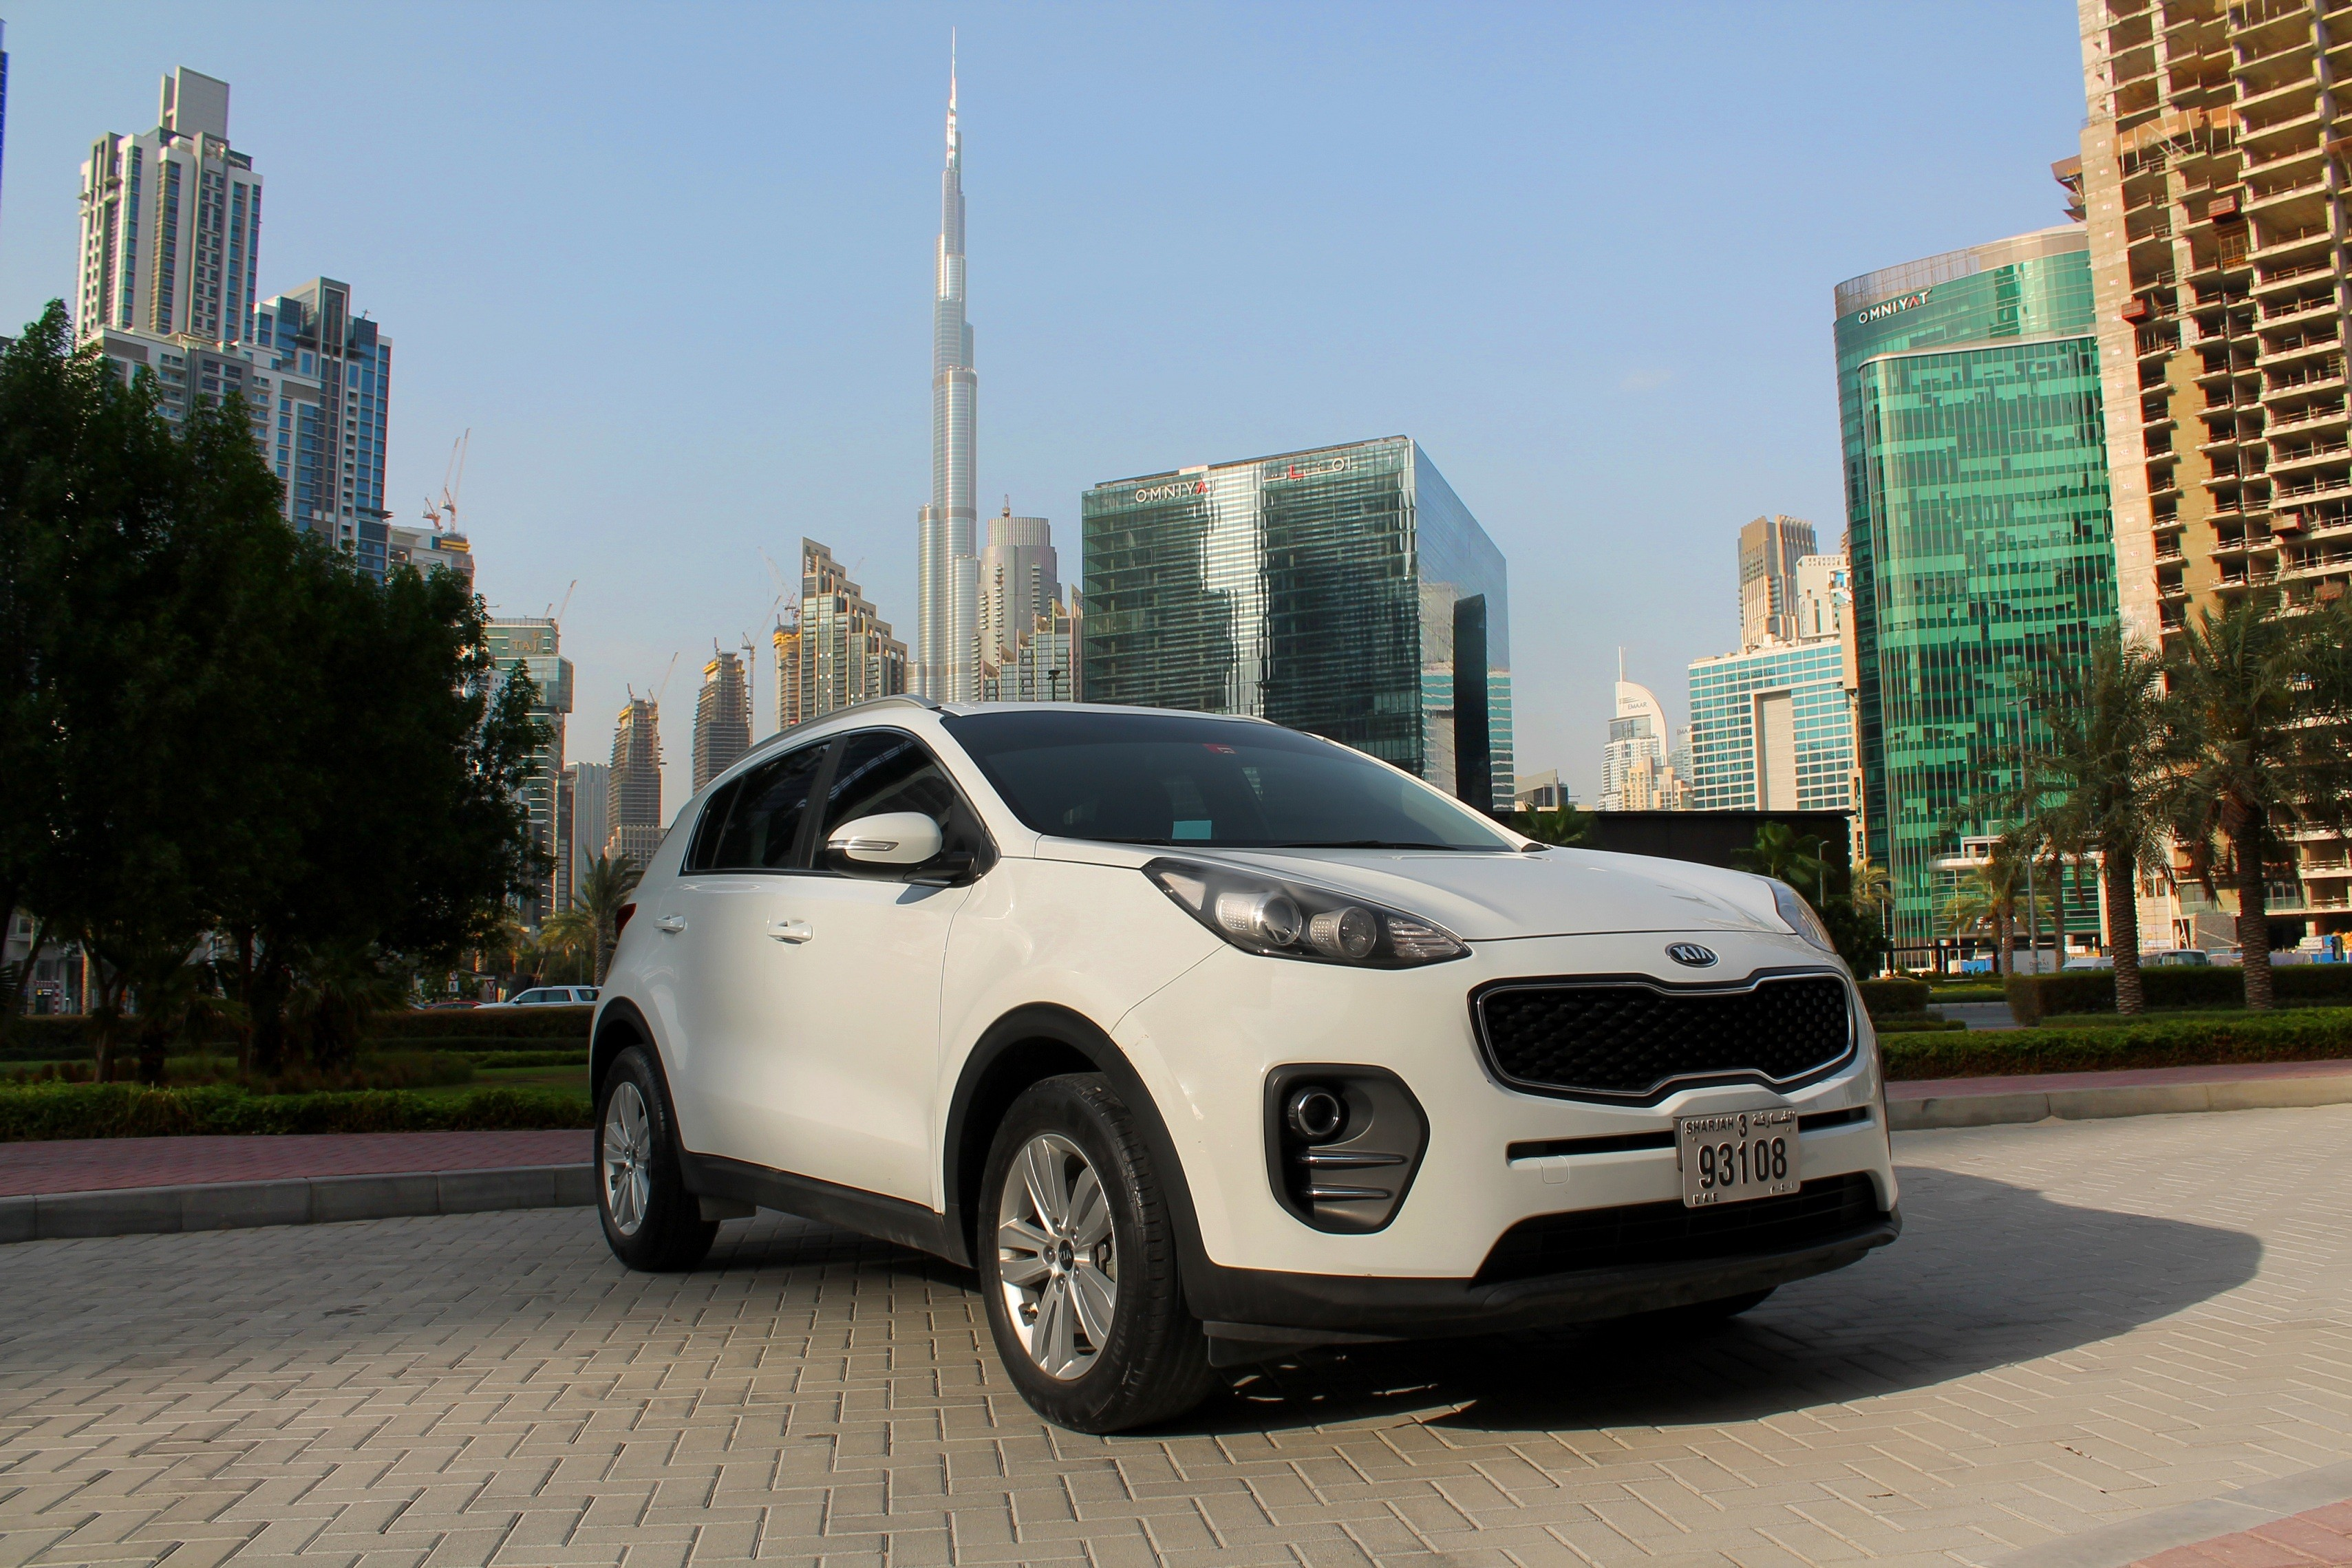 https://quickdrive.ae/uploads/2020/07/22/1 sportage.jpg